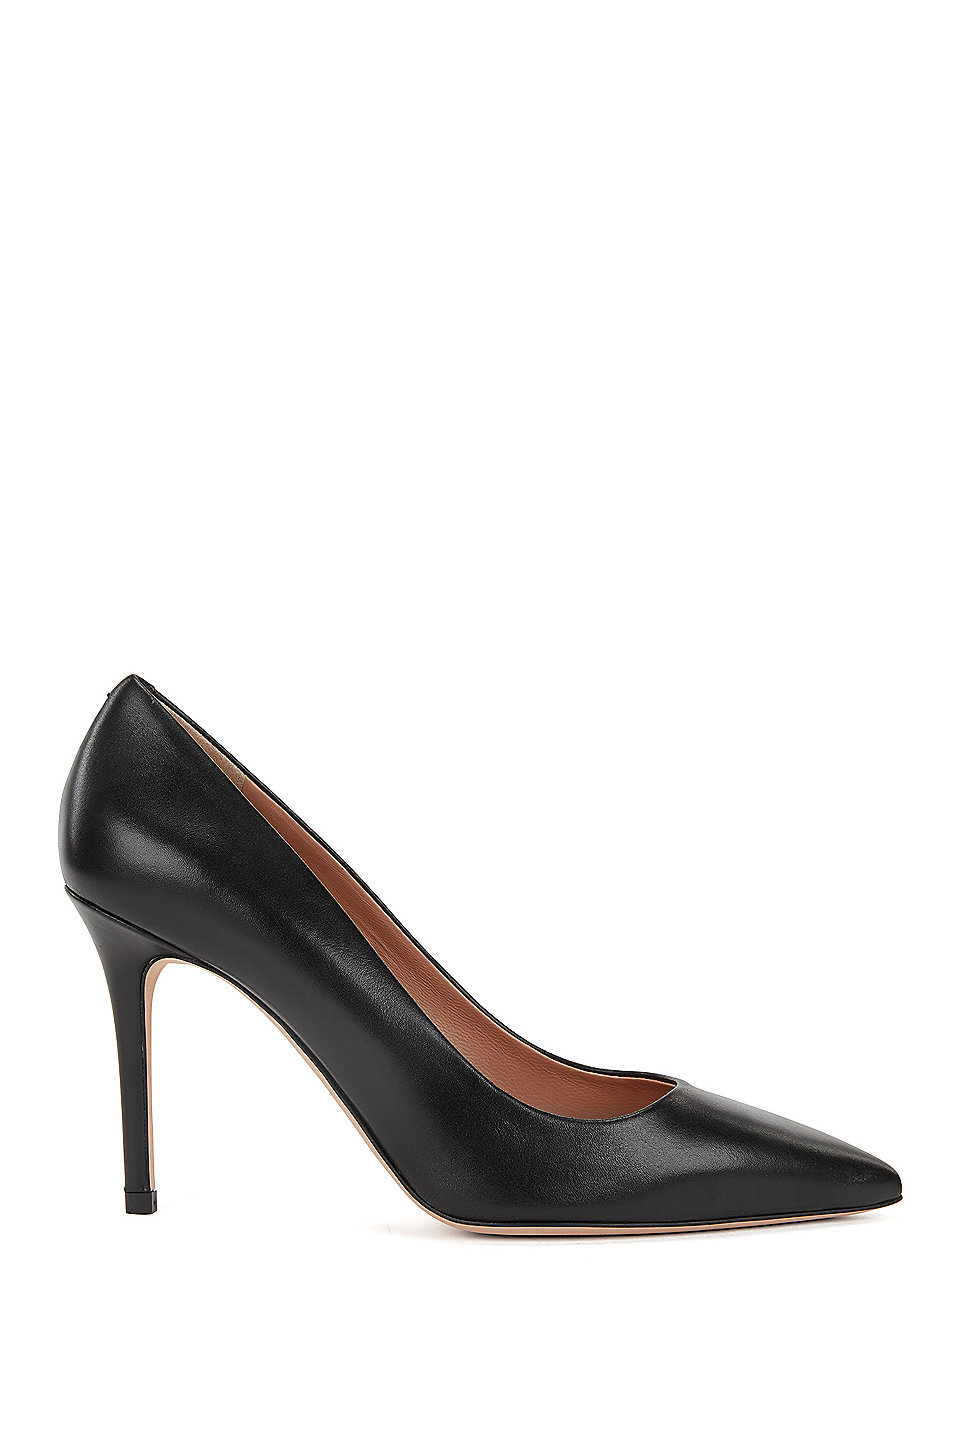 HUGO BOSS Leather Heels uU2PfKC